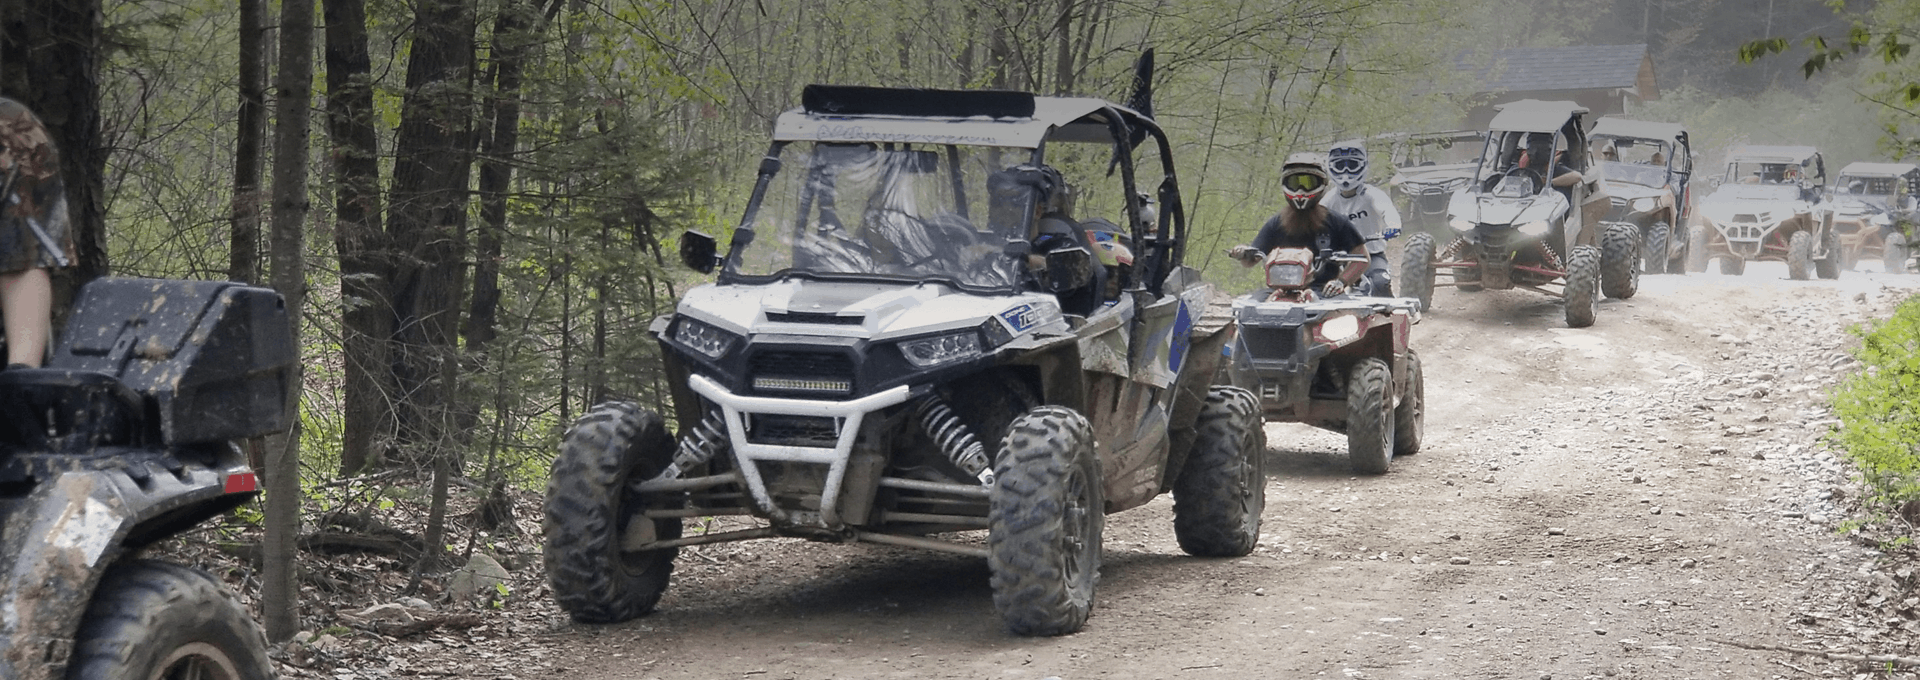 ATVs driving on a trail in Northern NH